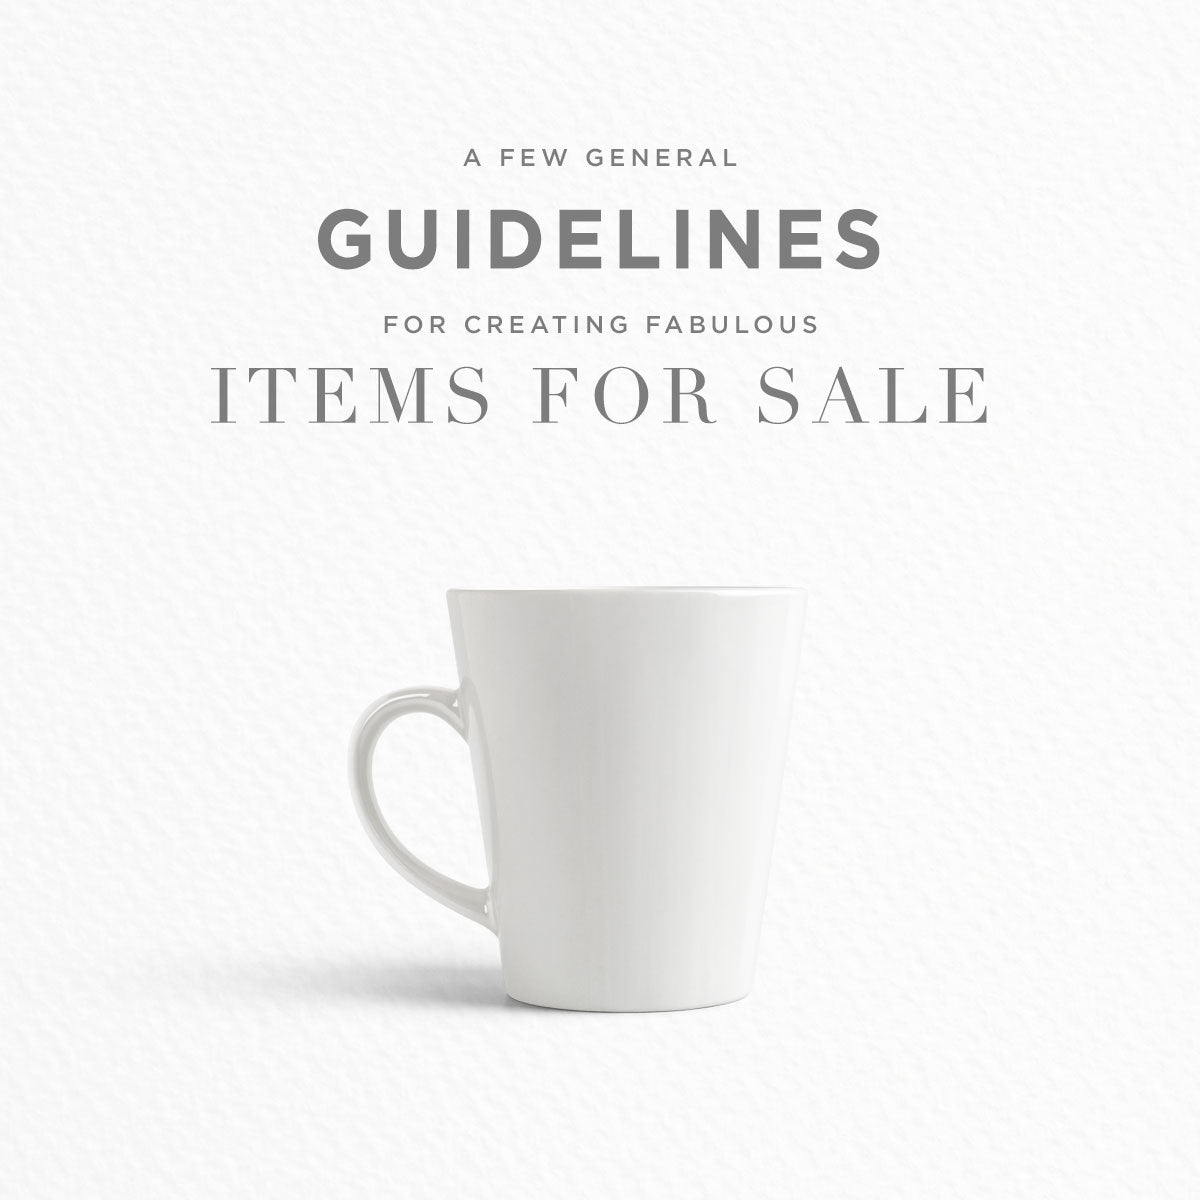 create items for sale general guidelines